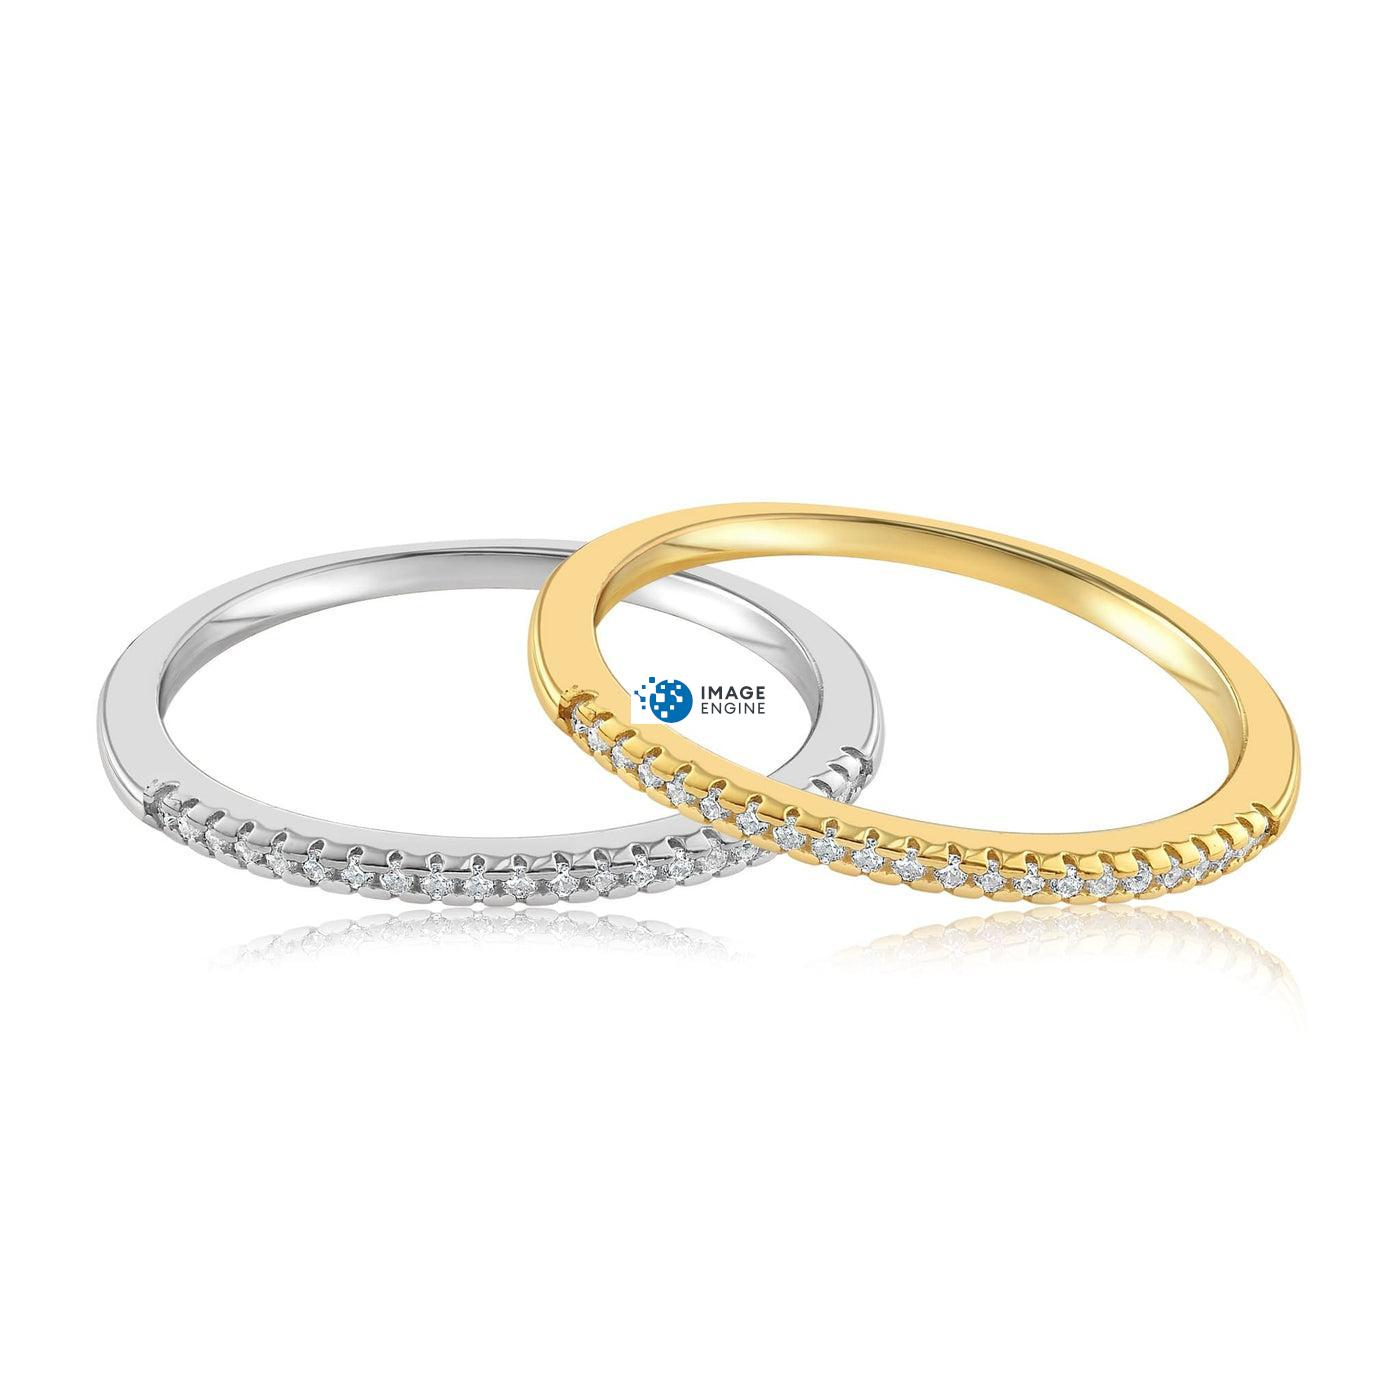 Brianna Bezel Ring - Front View SideBy Side - 18K Yellow Gold Vermeil and 925 Sterling Silver